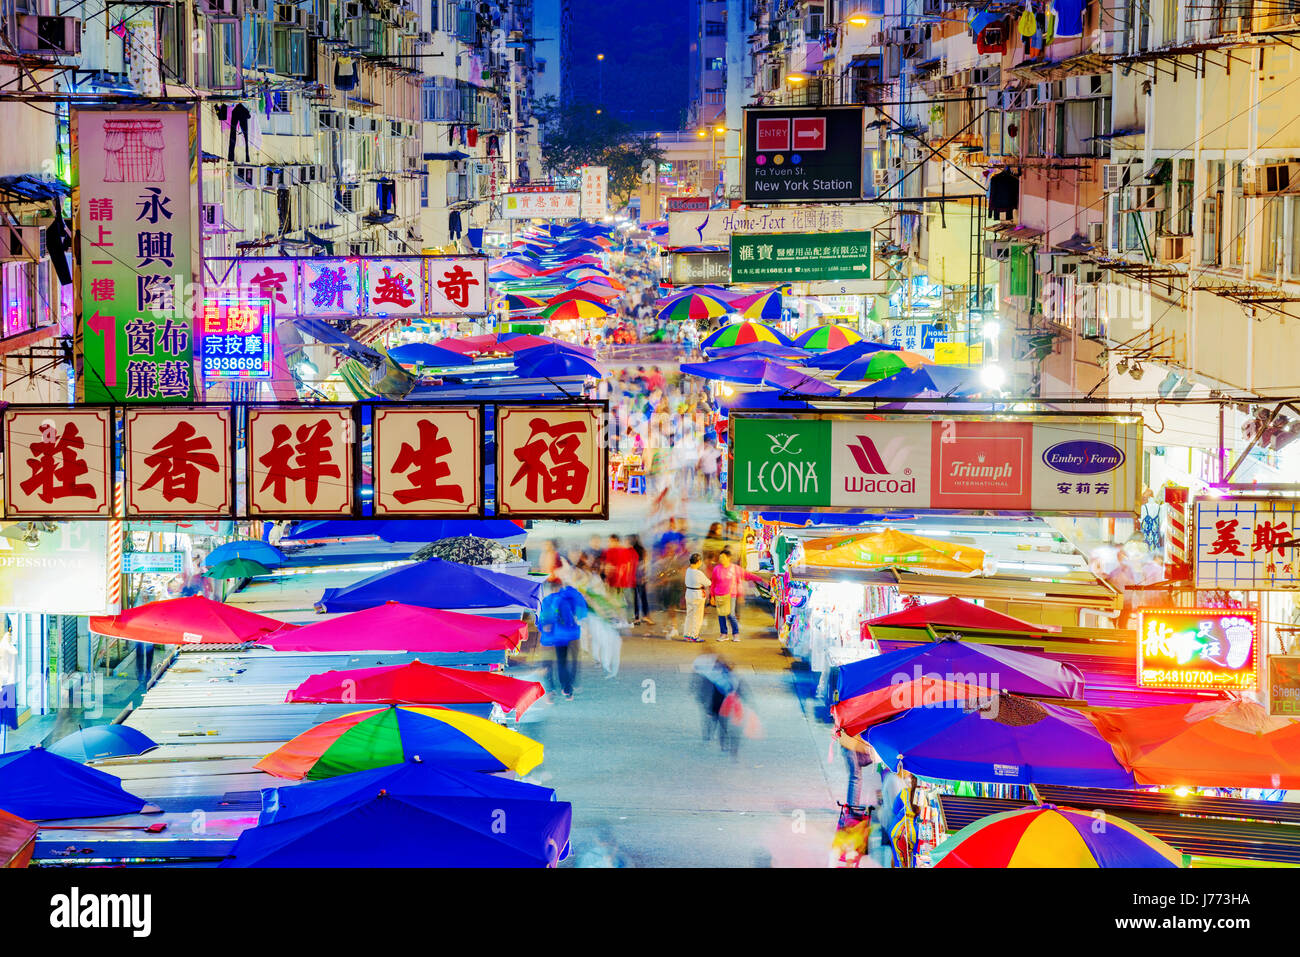 ONG KONG, CHINA - APRIL 24: This is a night view of Fa Yuen street market a popular local market in in the Mong - Stock Image